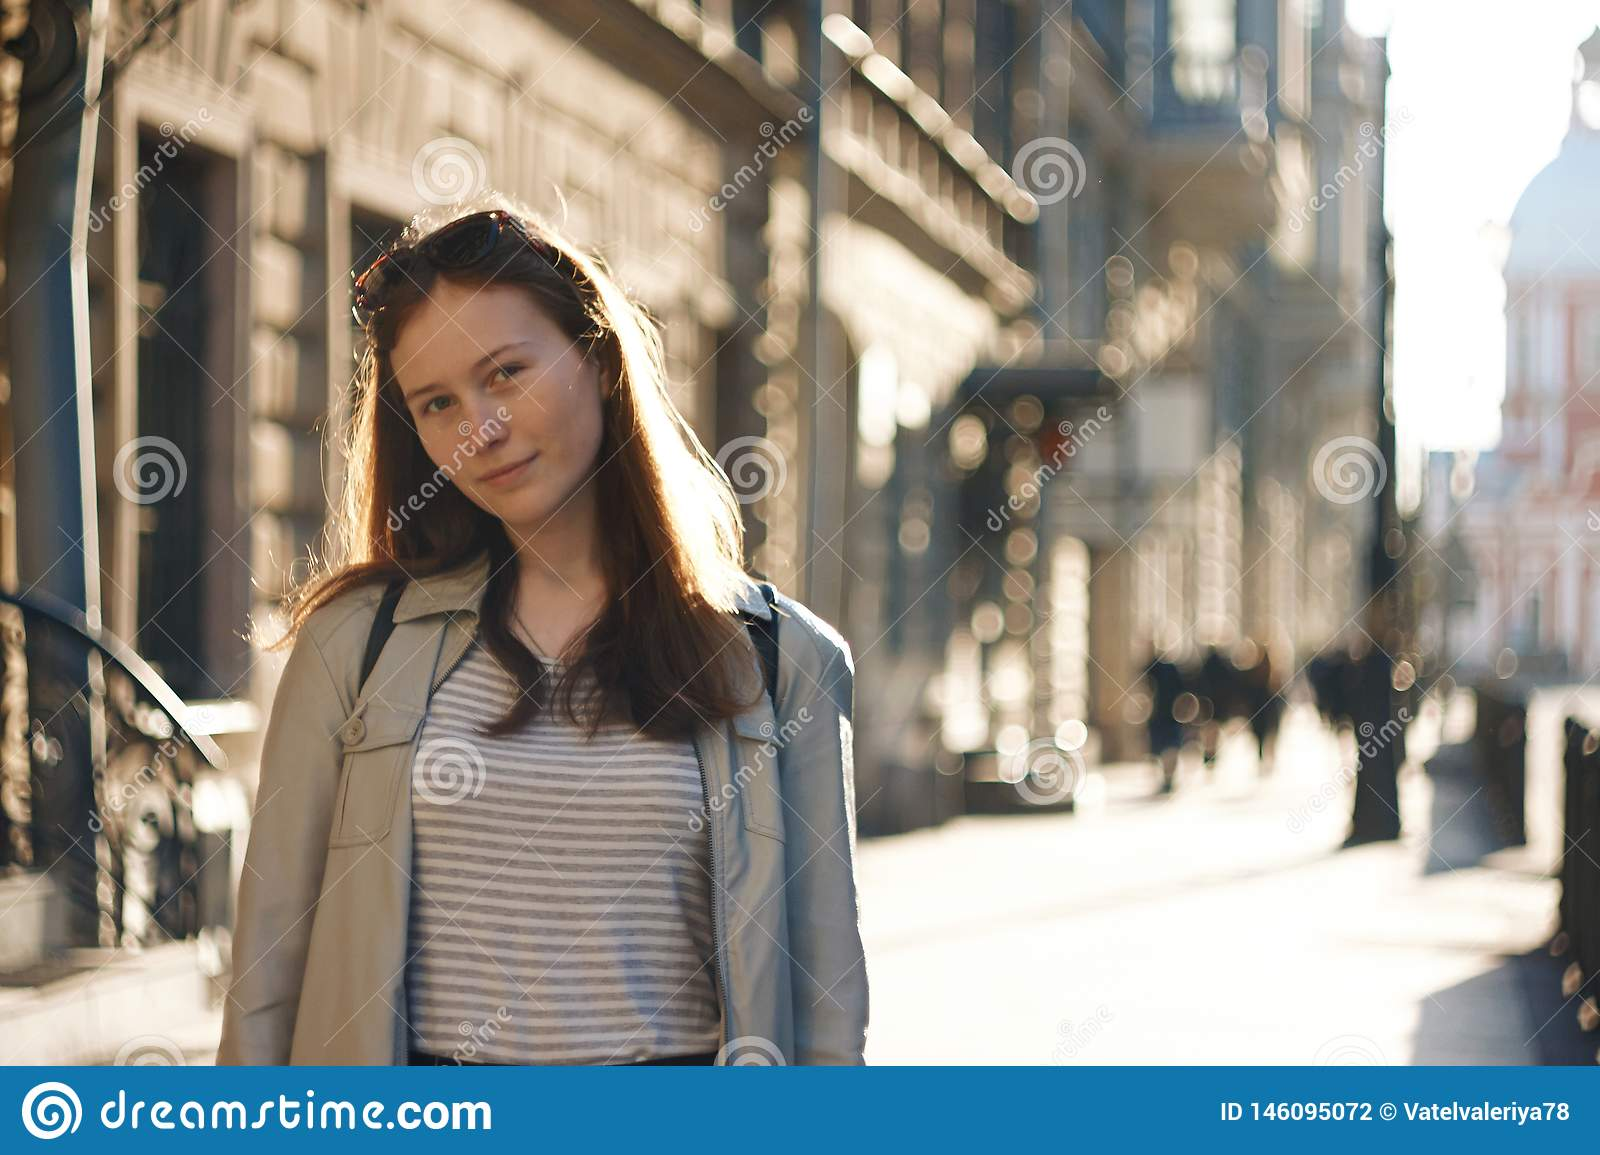 A student girl stands on the background of a city street